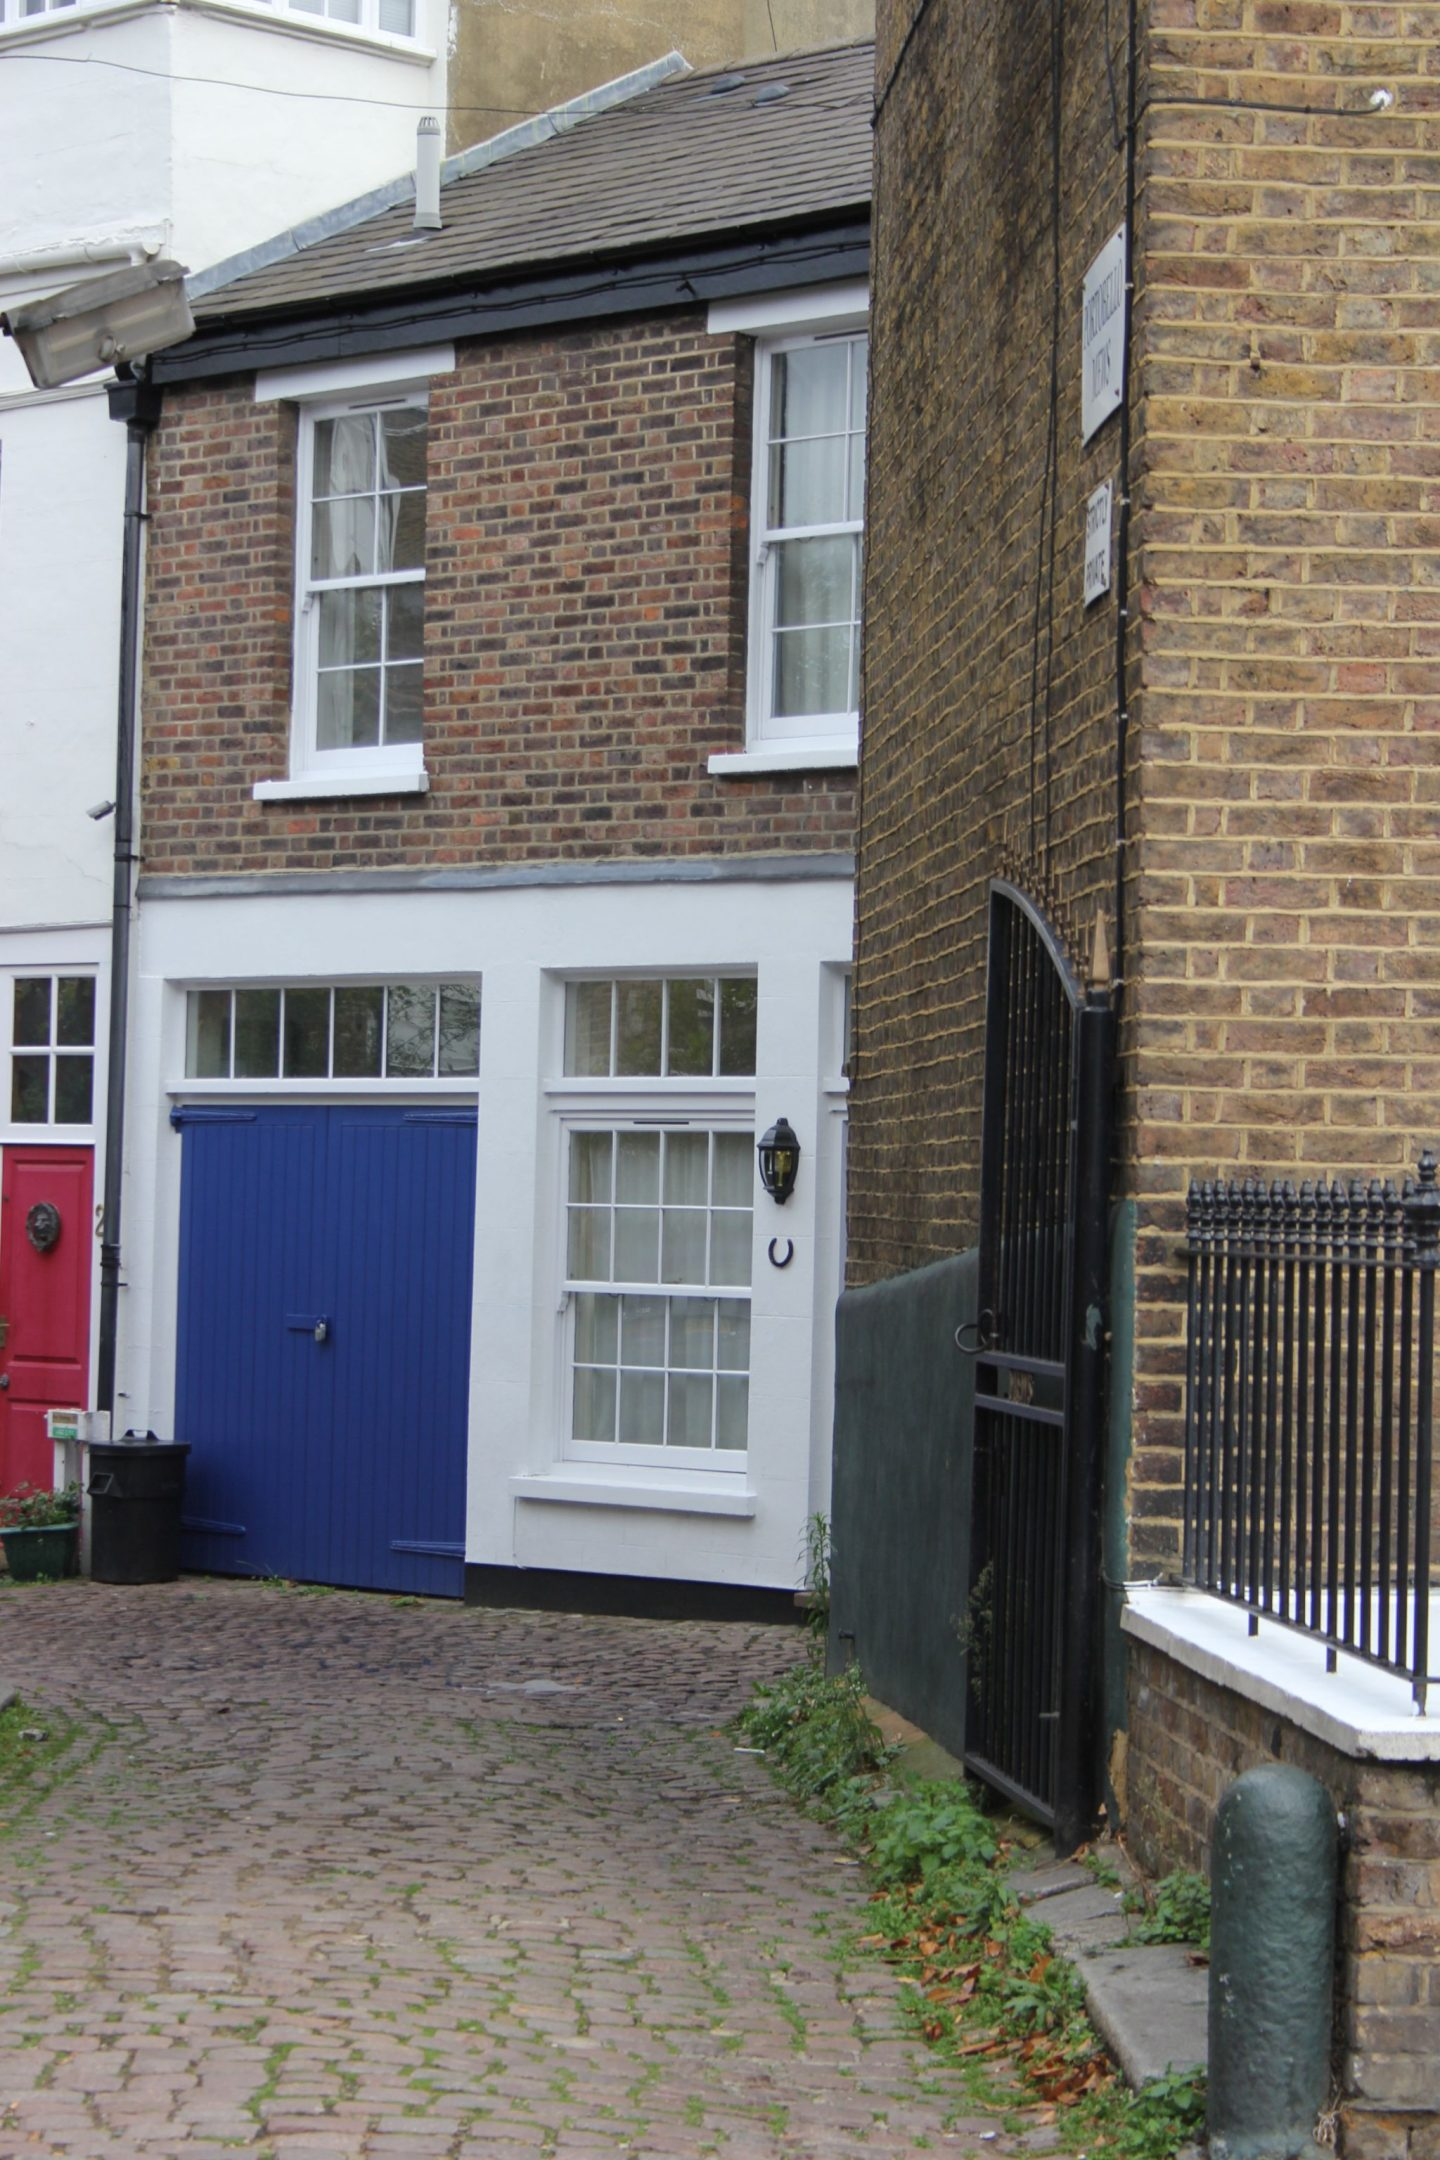 Bright electric blue painted stable doors to entrance of mews. Hello Lovely Studio. Come tour these gorgeous front doors in Notting Hill and Holland Park...certainly lovely indeed. Curb appeal and Paint Color Inspiration. Lovely London Doors & Paint Color Ideas!